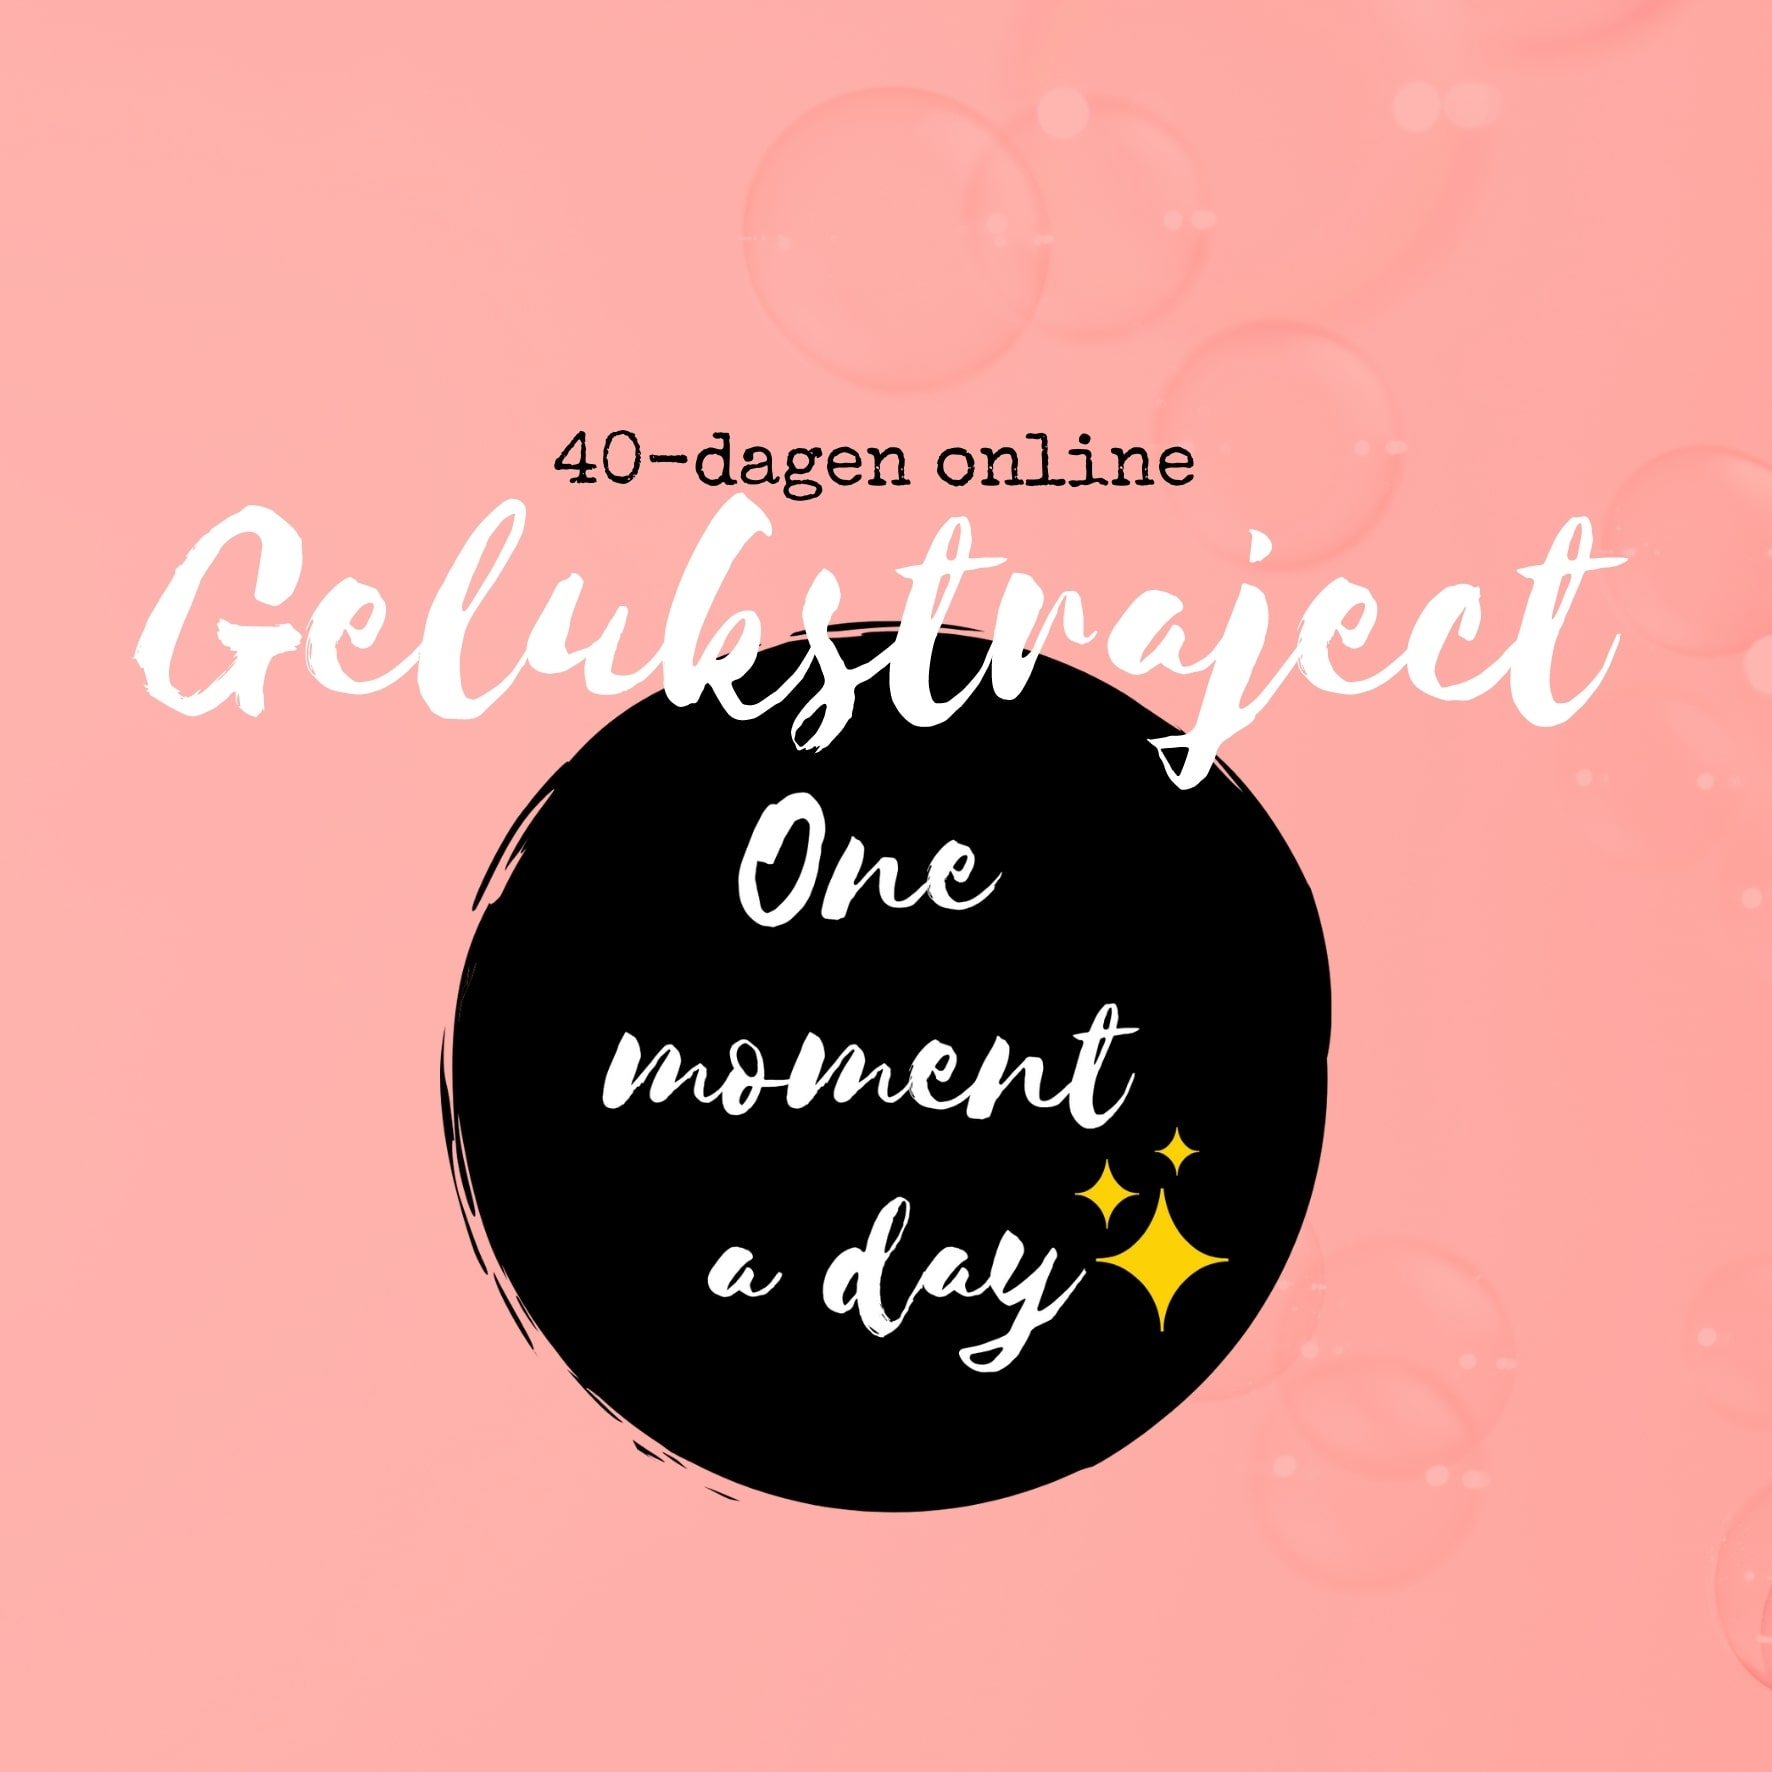 One moment a day | Gelukstraject